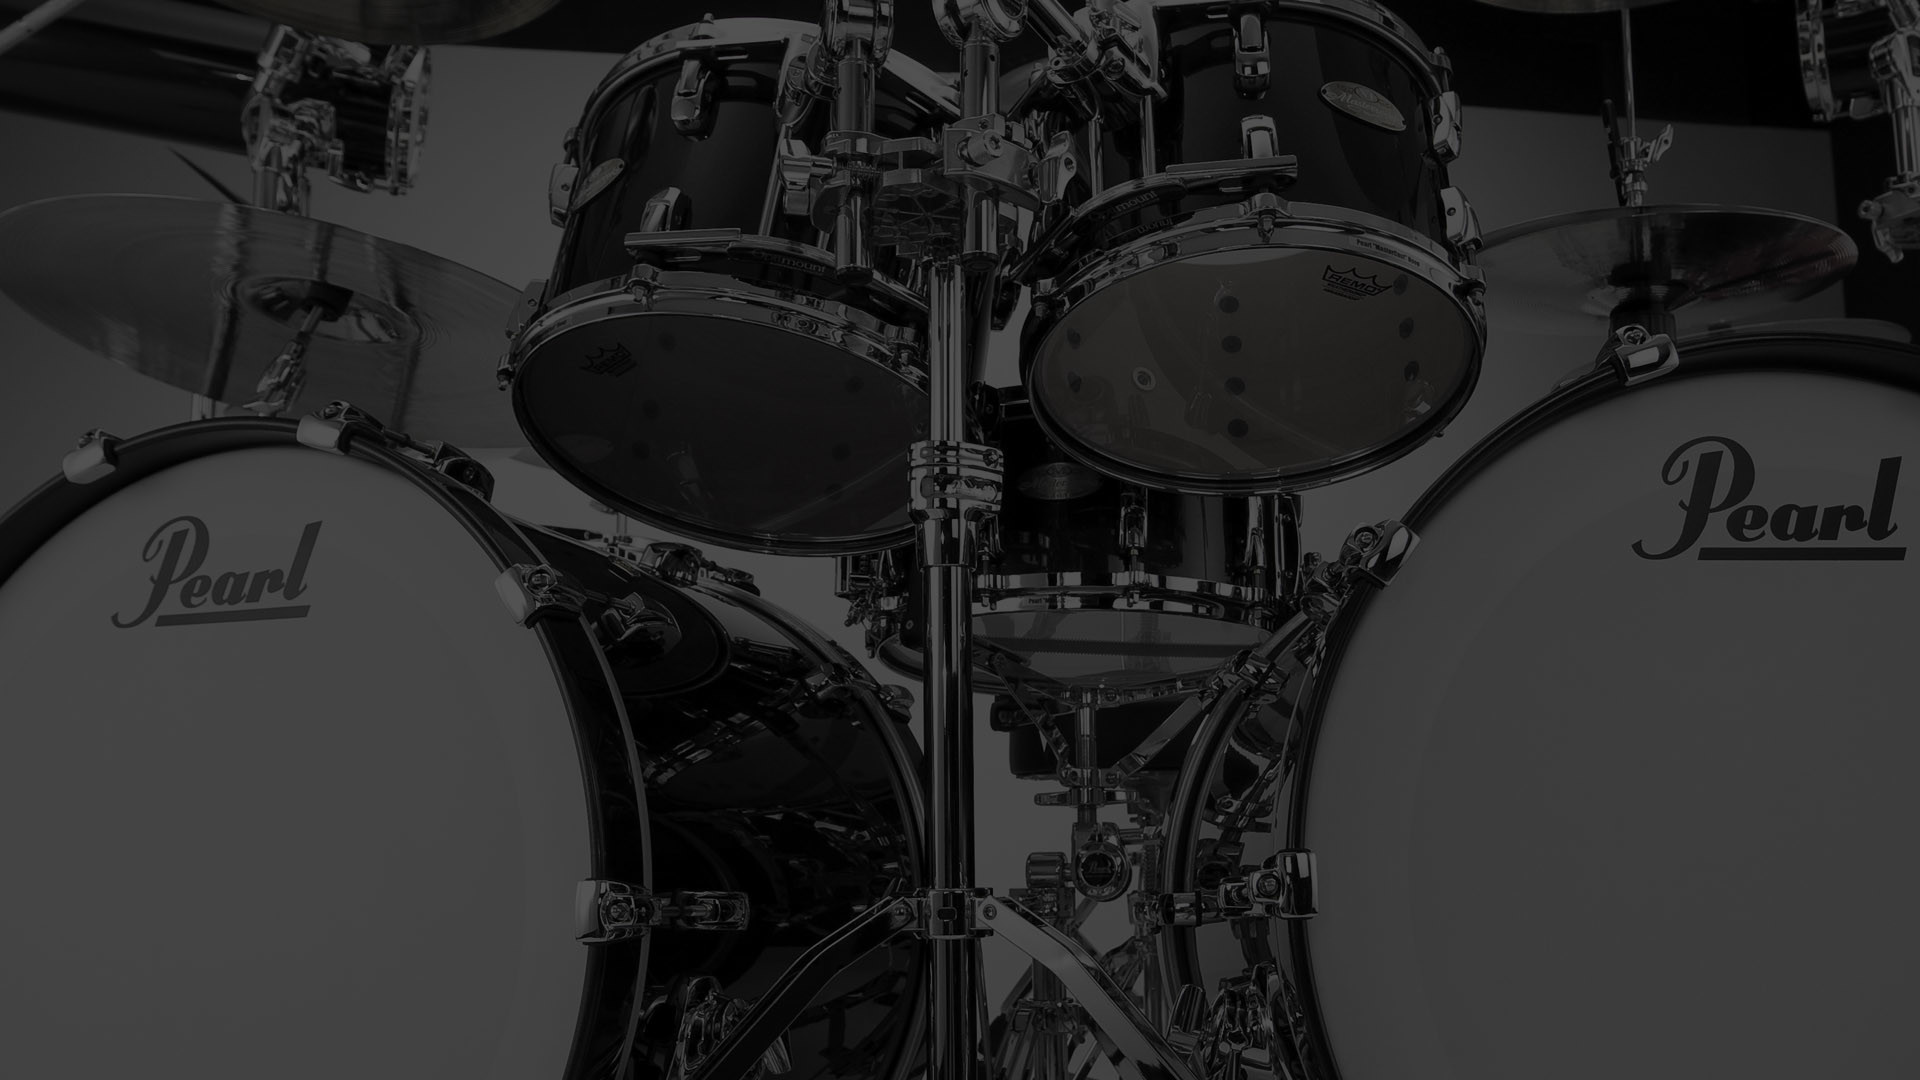 Res: 1920x1080, Pearl Drum - The Best Reason to Play Drums